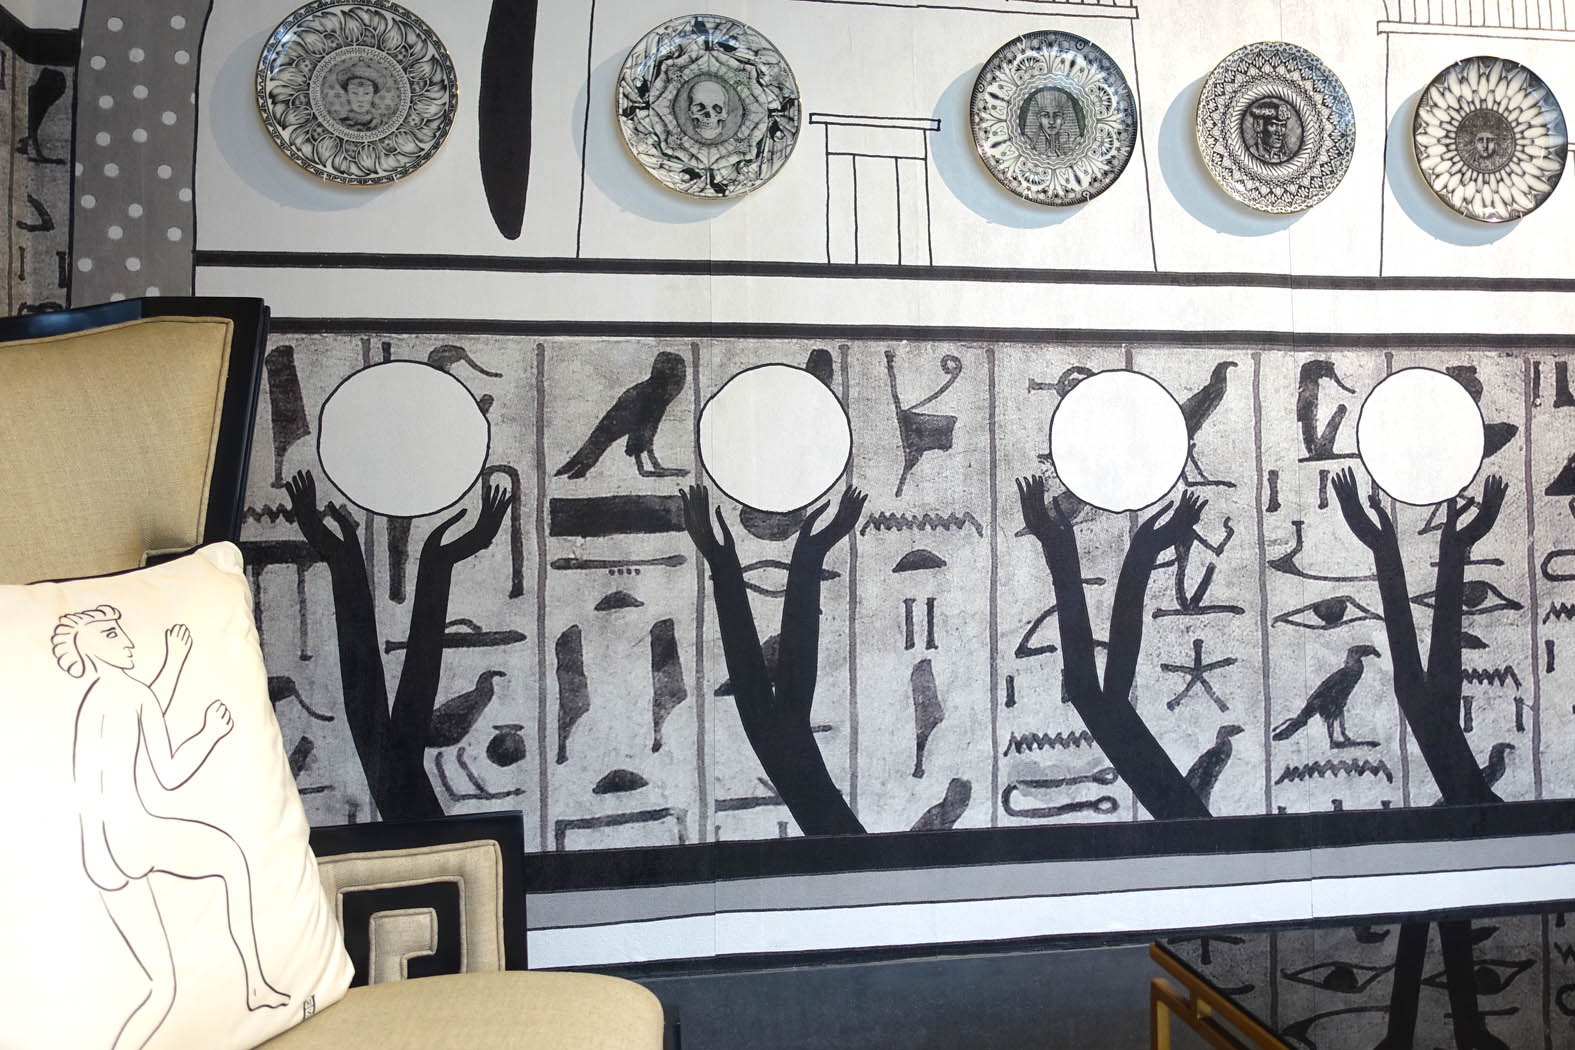 Helen's Memphis wallpaper, Roman Graffiti cushion and plates collection on display.